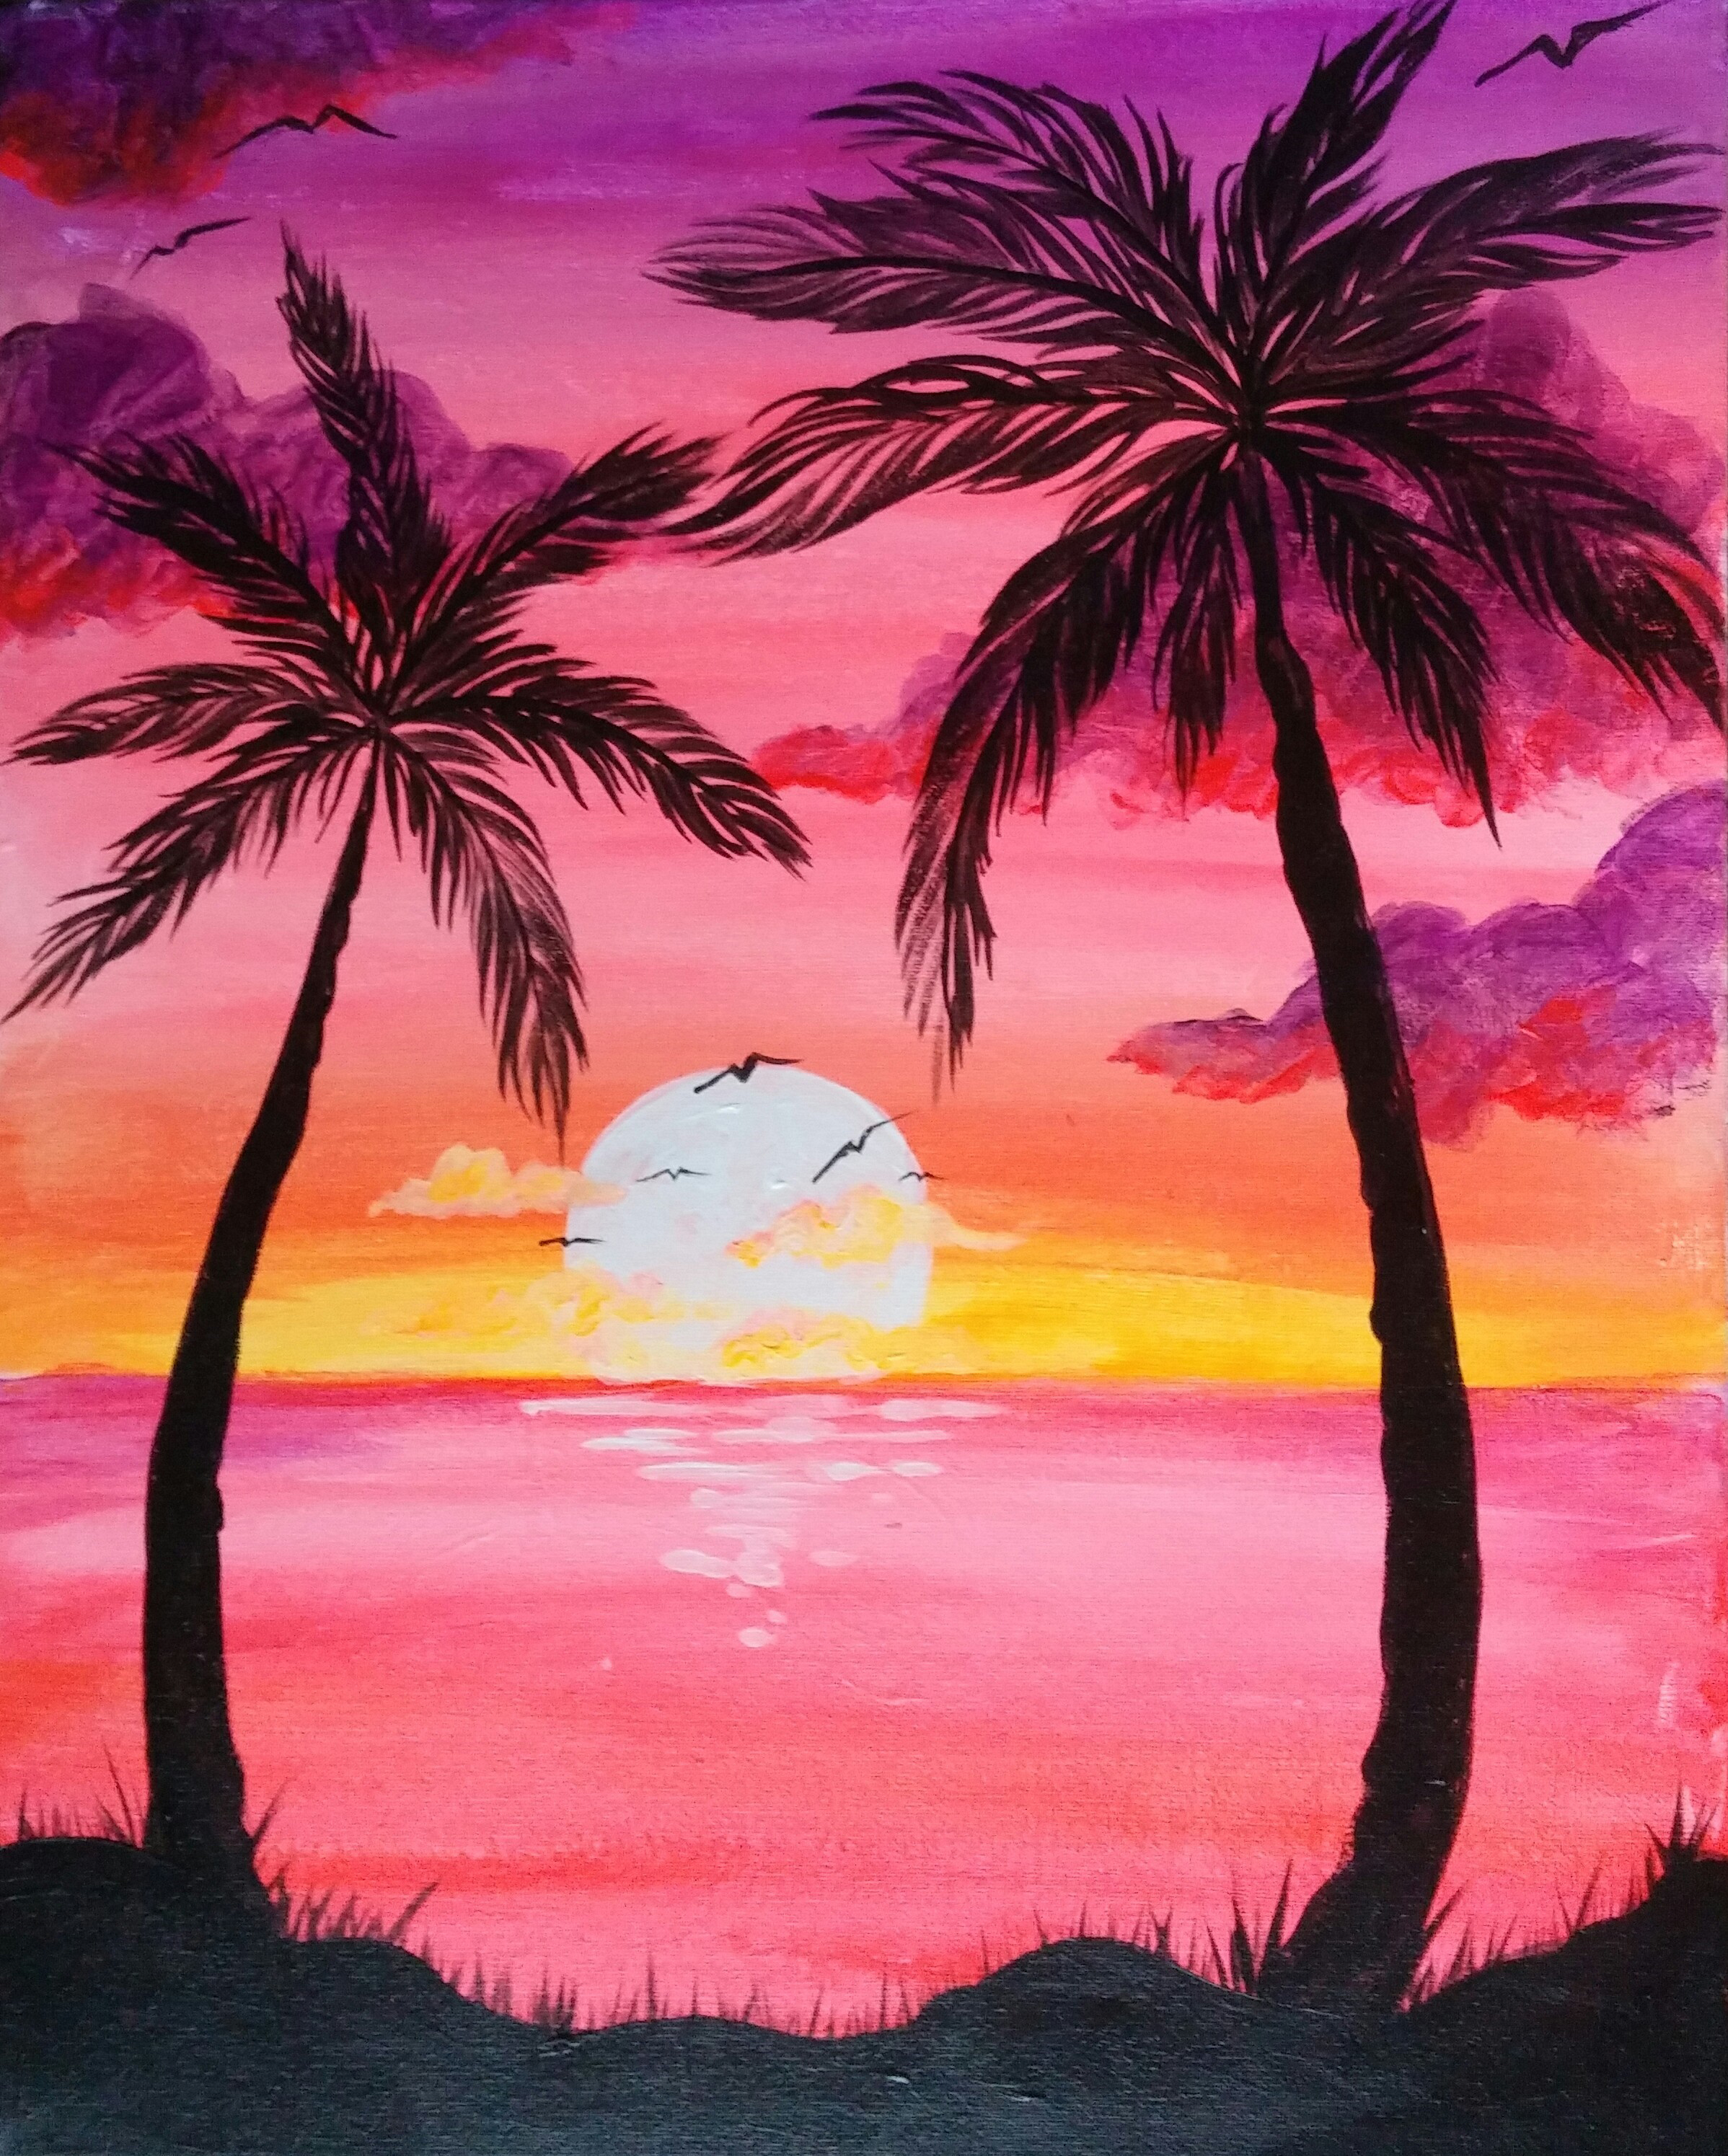 Sunset Palms - Pinot's Palette Painting